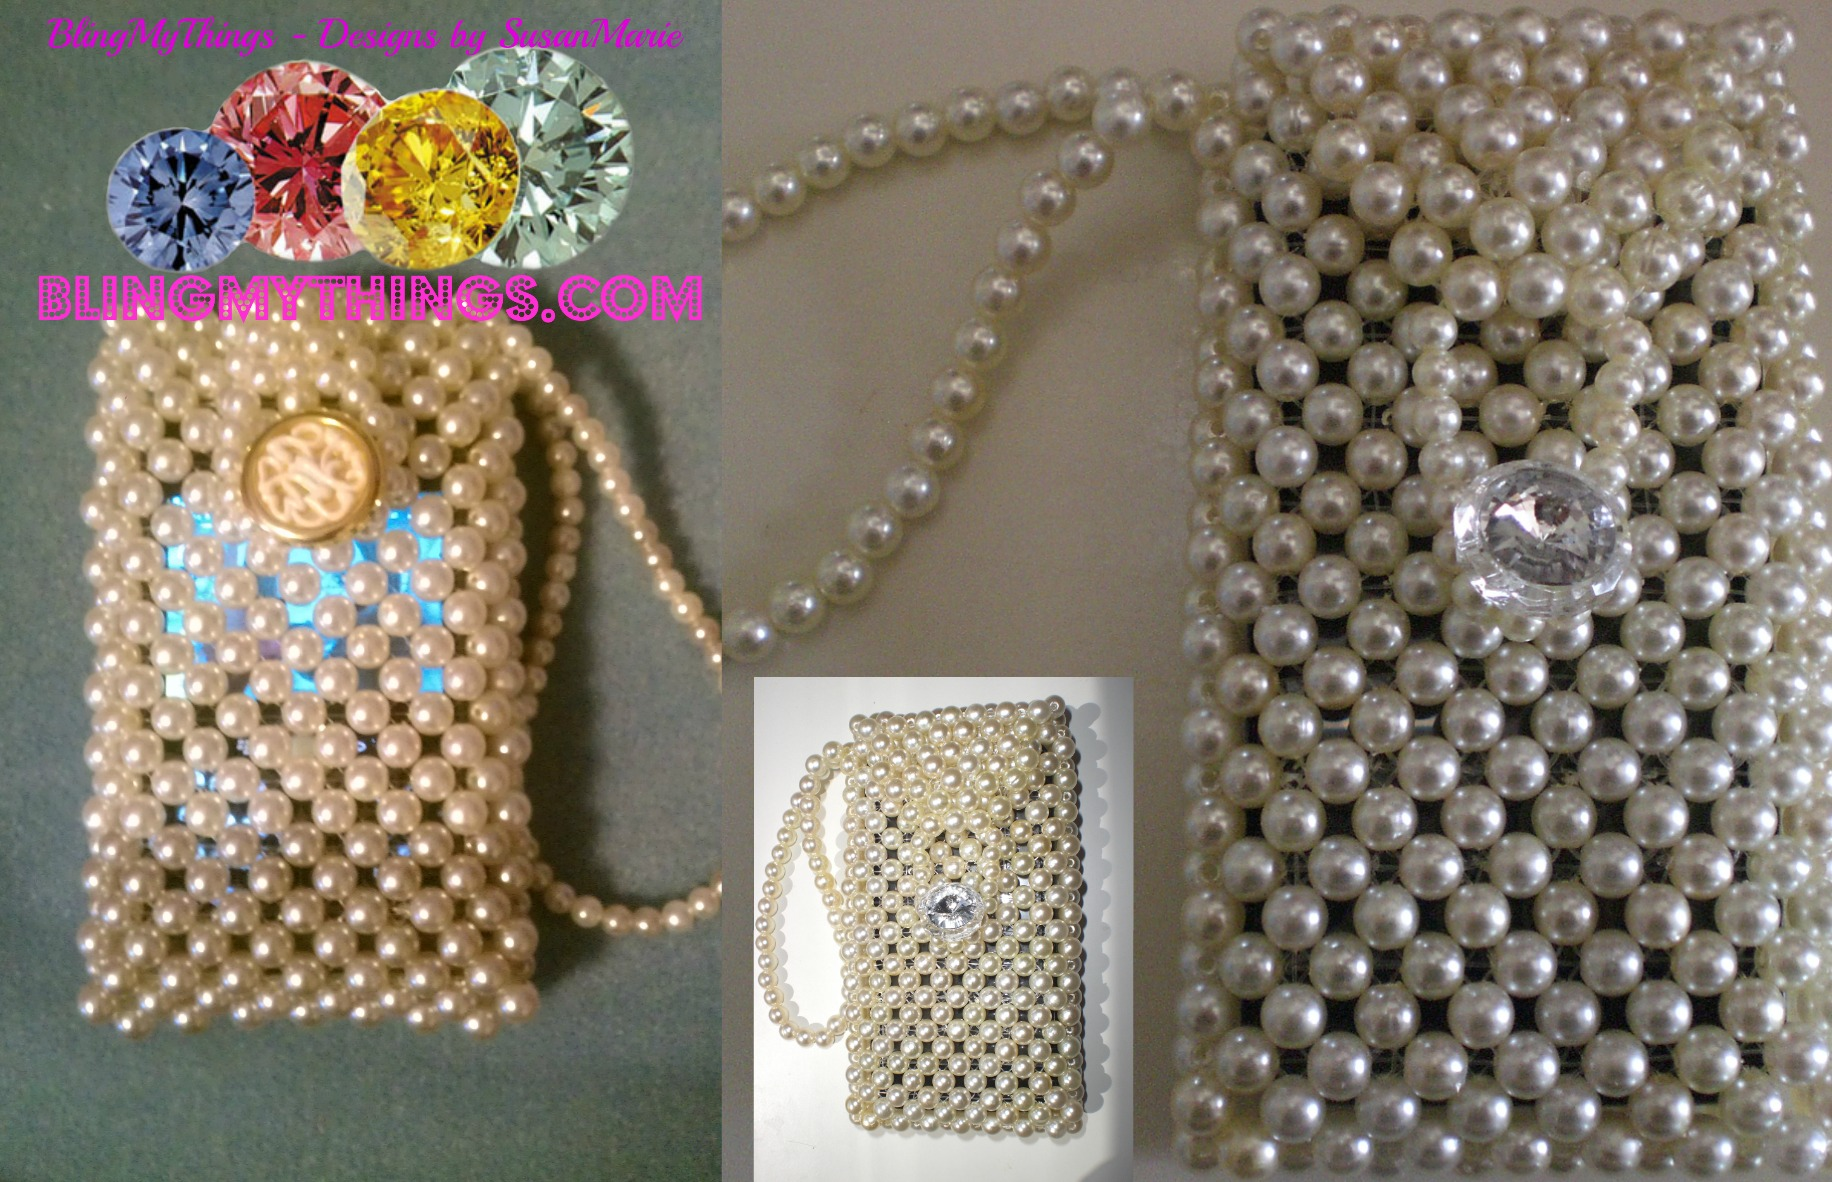 Acrylic Pearl Beaded Cell Phone Bag With Wristlet Strap Handmade On Storenvy